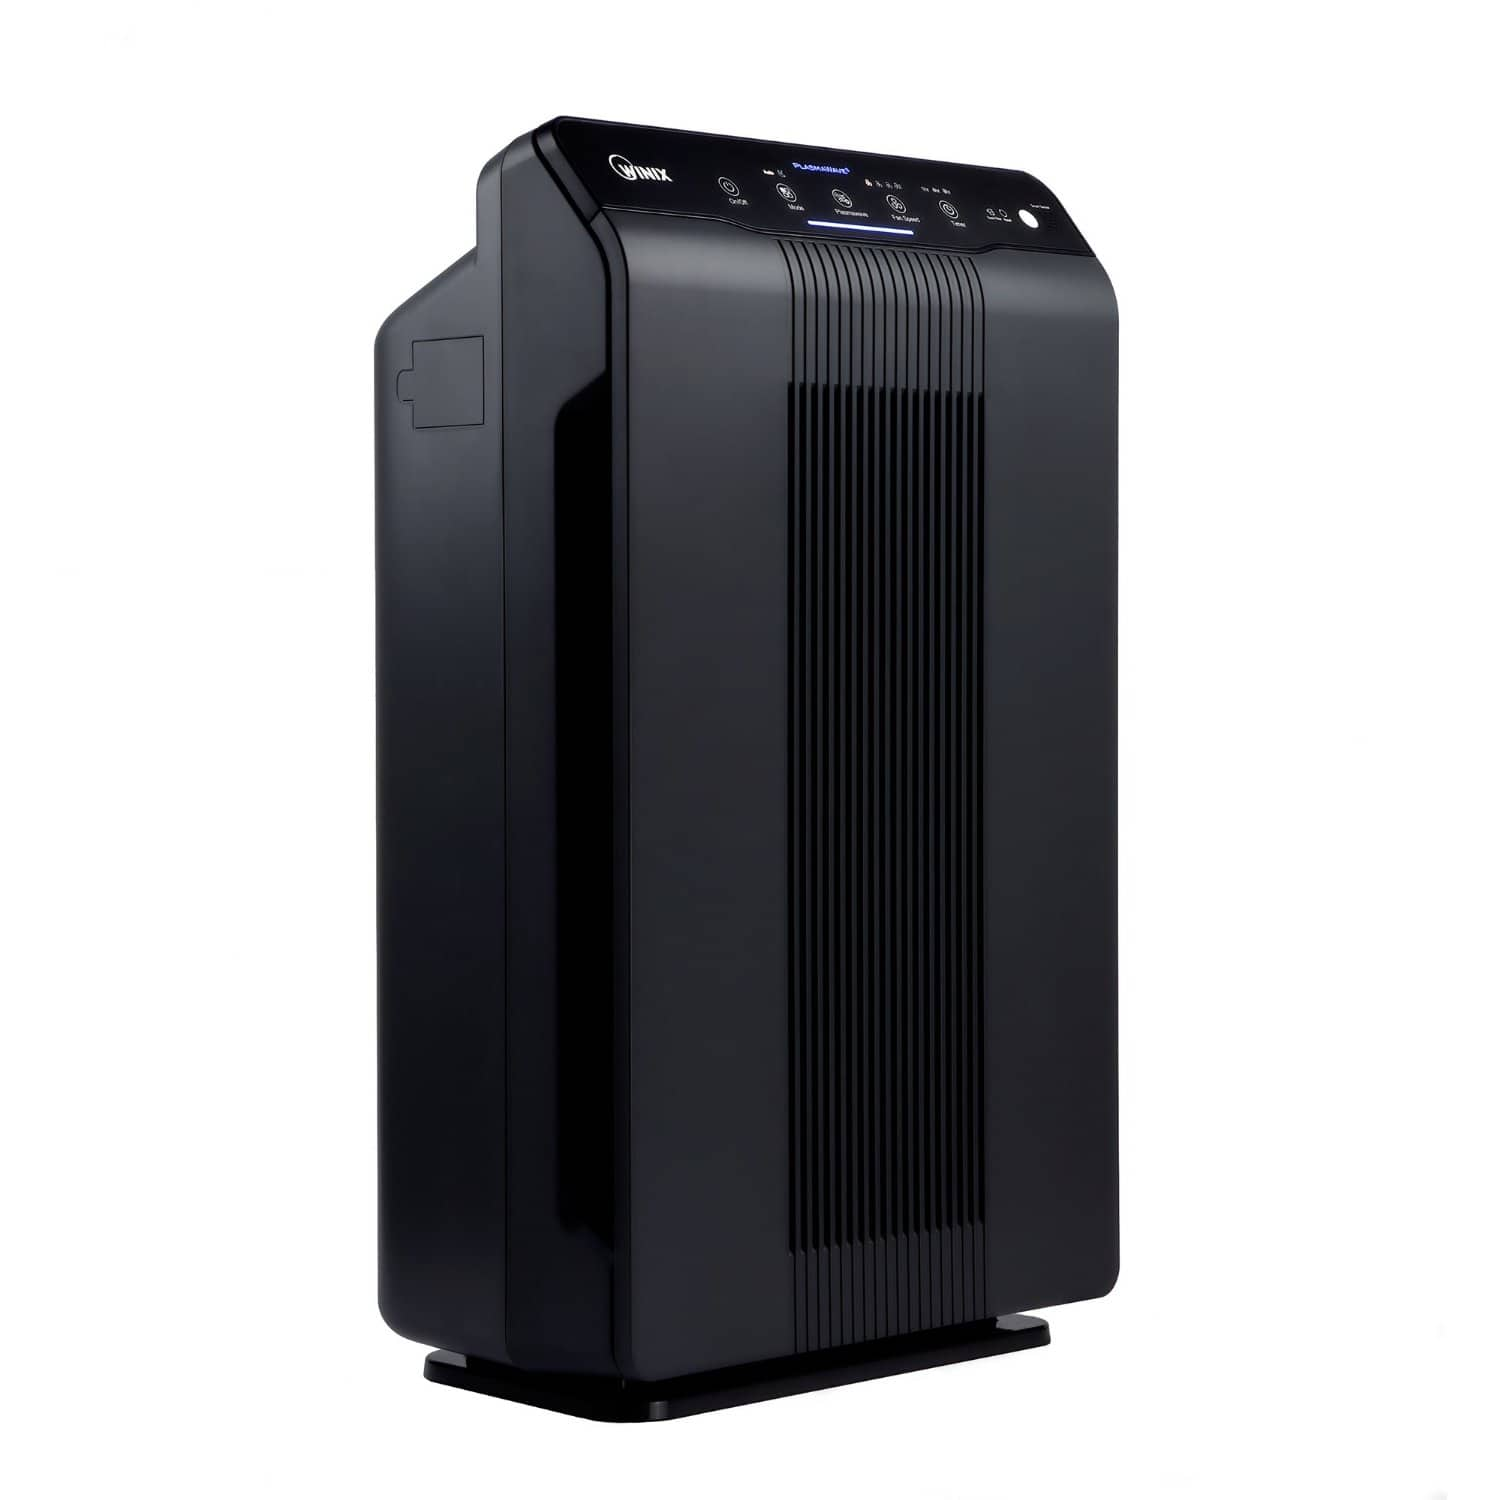 Winix 5500-2 Air purifier with True HEPA, PlasmaWave and Carbon Filter $149.99 @Amazon